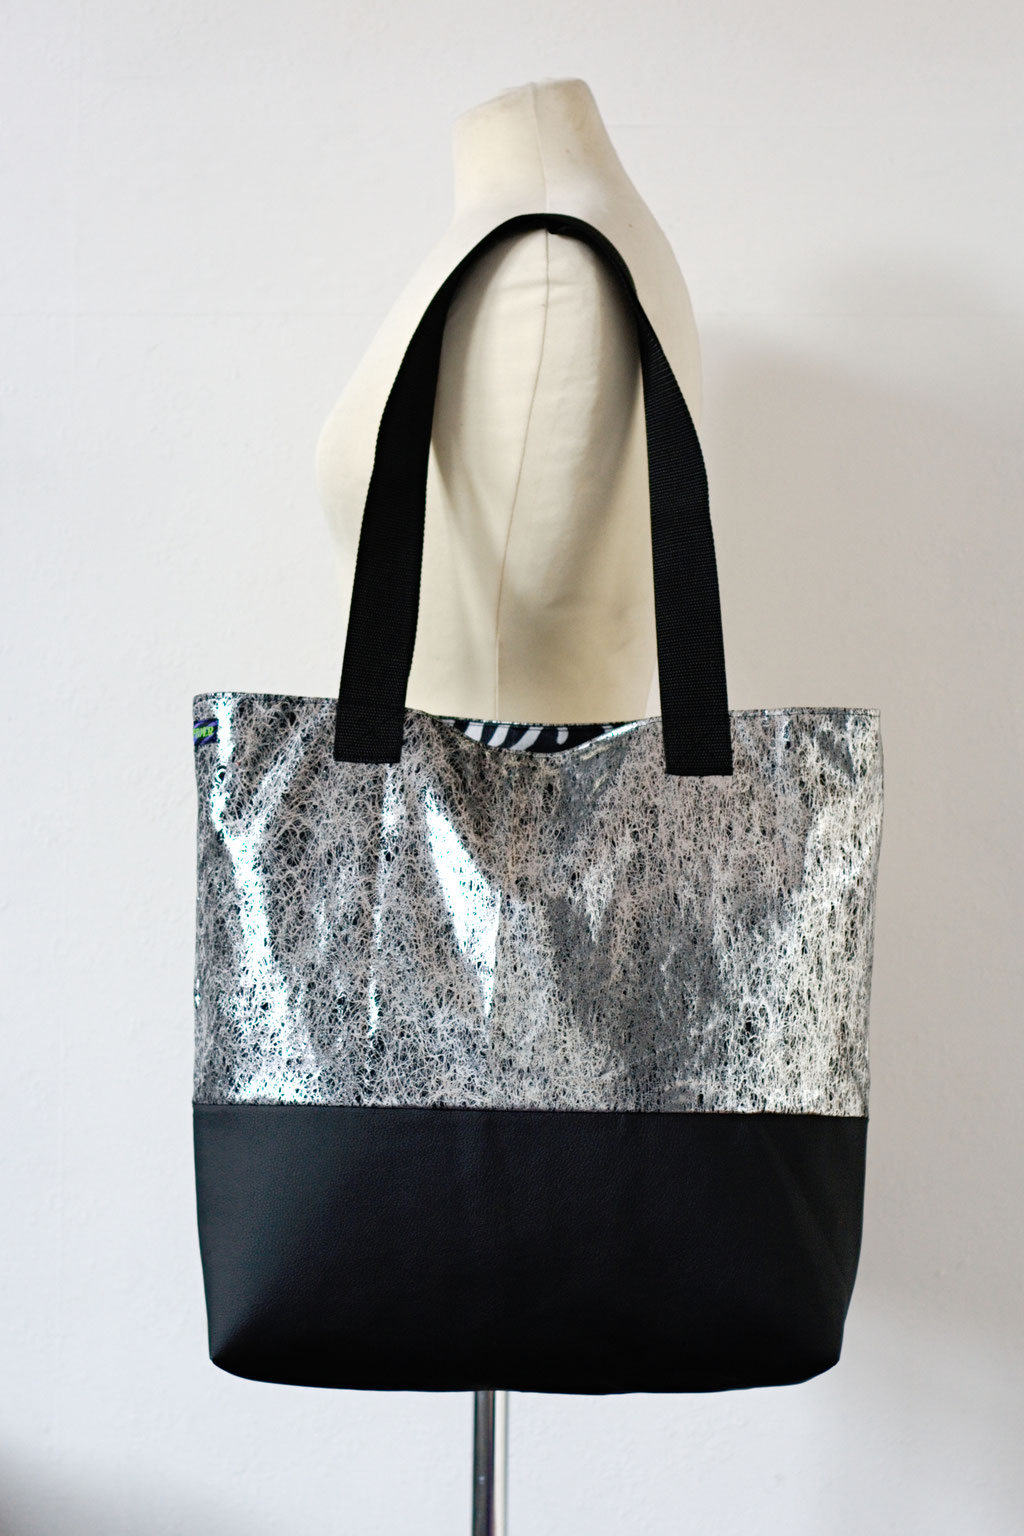 2021 belt bags and new shoulder bags out now! - Tote Bag Liquid Silver - Zebraspider Eco Anti-Fashion